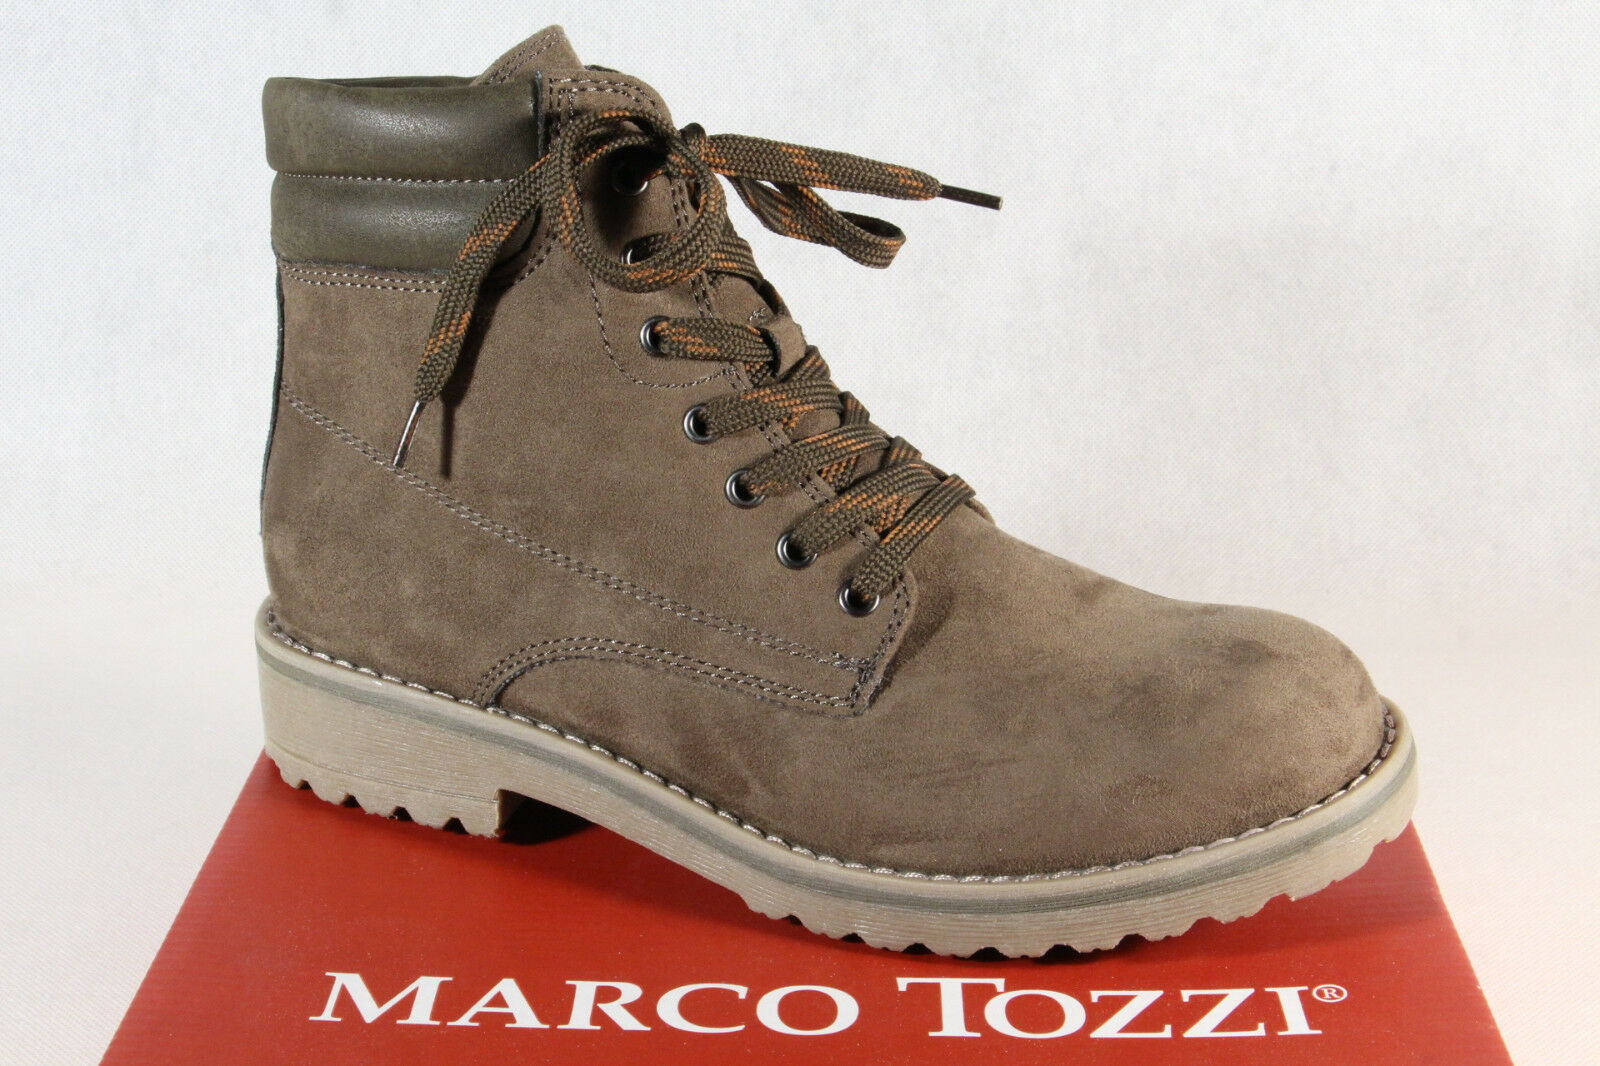 Marco Tozzi 26231 Women's Boots Ankle Boots Lace up Boots Khaki New